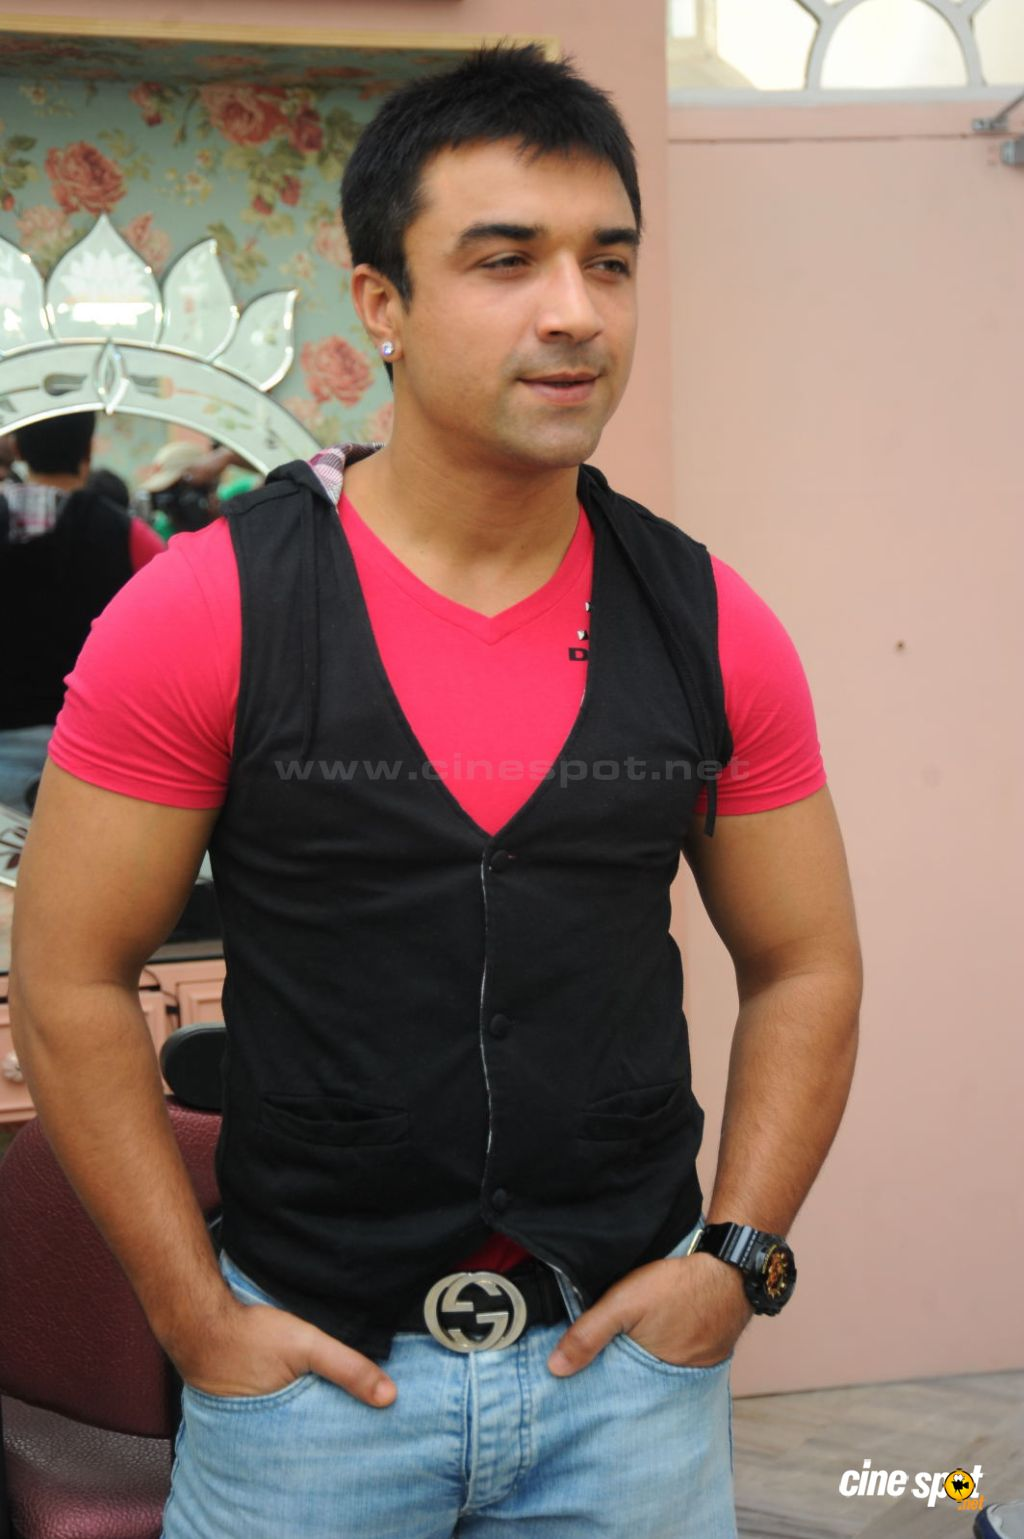 ajaz khan wikiajaz khan wiki, ajaz khan youtube, ajaz khan in comedy nights with kapil, ajaz khan instagram, ajaz khan, ajaz khan wife, ajaz khan height, ajaz khan wikipedia, ajaz khan twitter, ajaz khan facebook, ajaz khan dialogues, ajaz khan kapil sharma, ajaz khan age, ajaz khan upcoming movies, ajaz khan shayari, ajaz khan biography, ajaz khan bigg boss 8, ajaz khan oscar, ajaz khan wife name, ajaz khan bigg boss dialogues